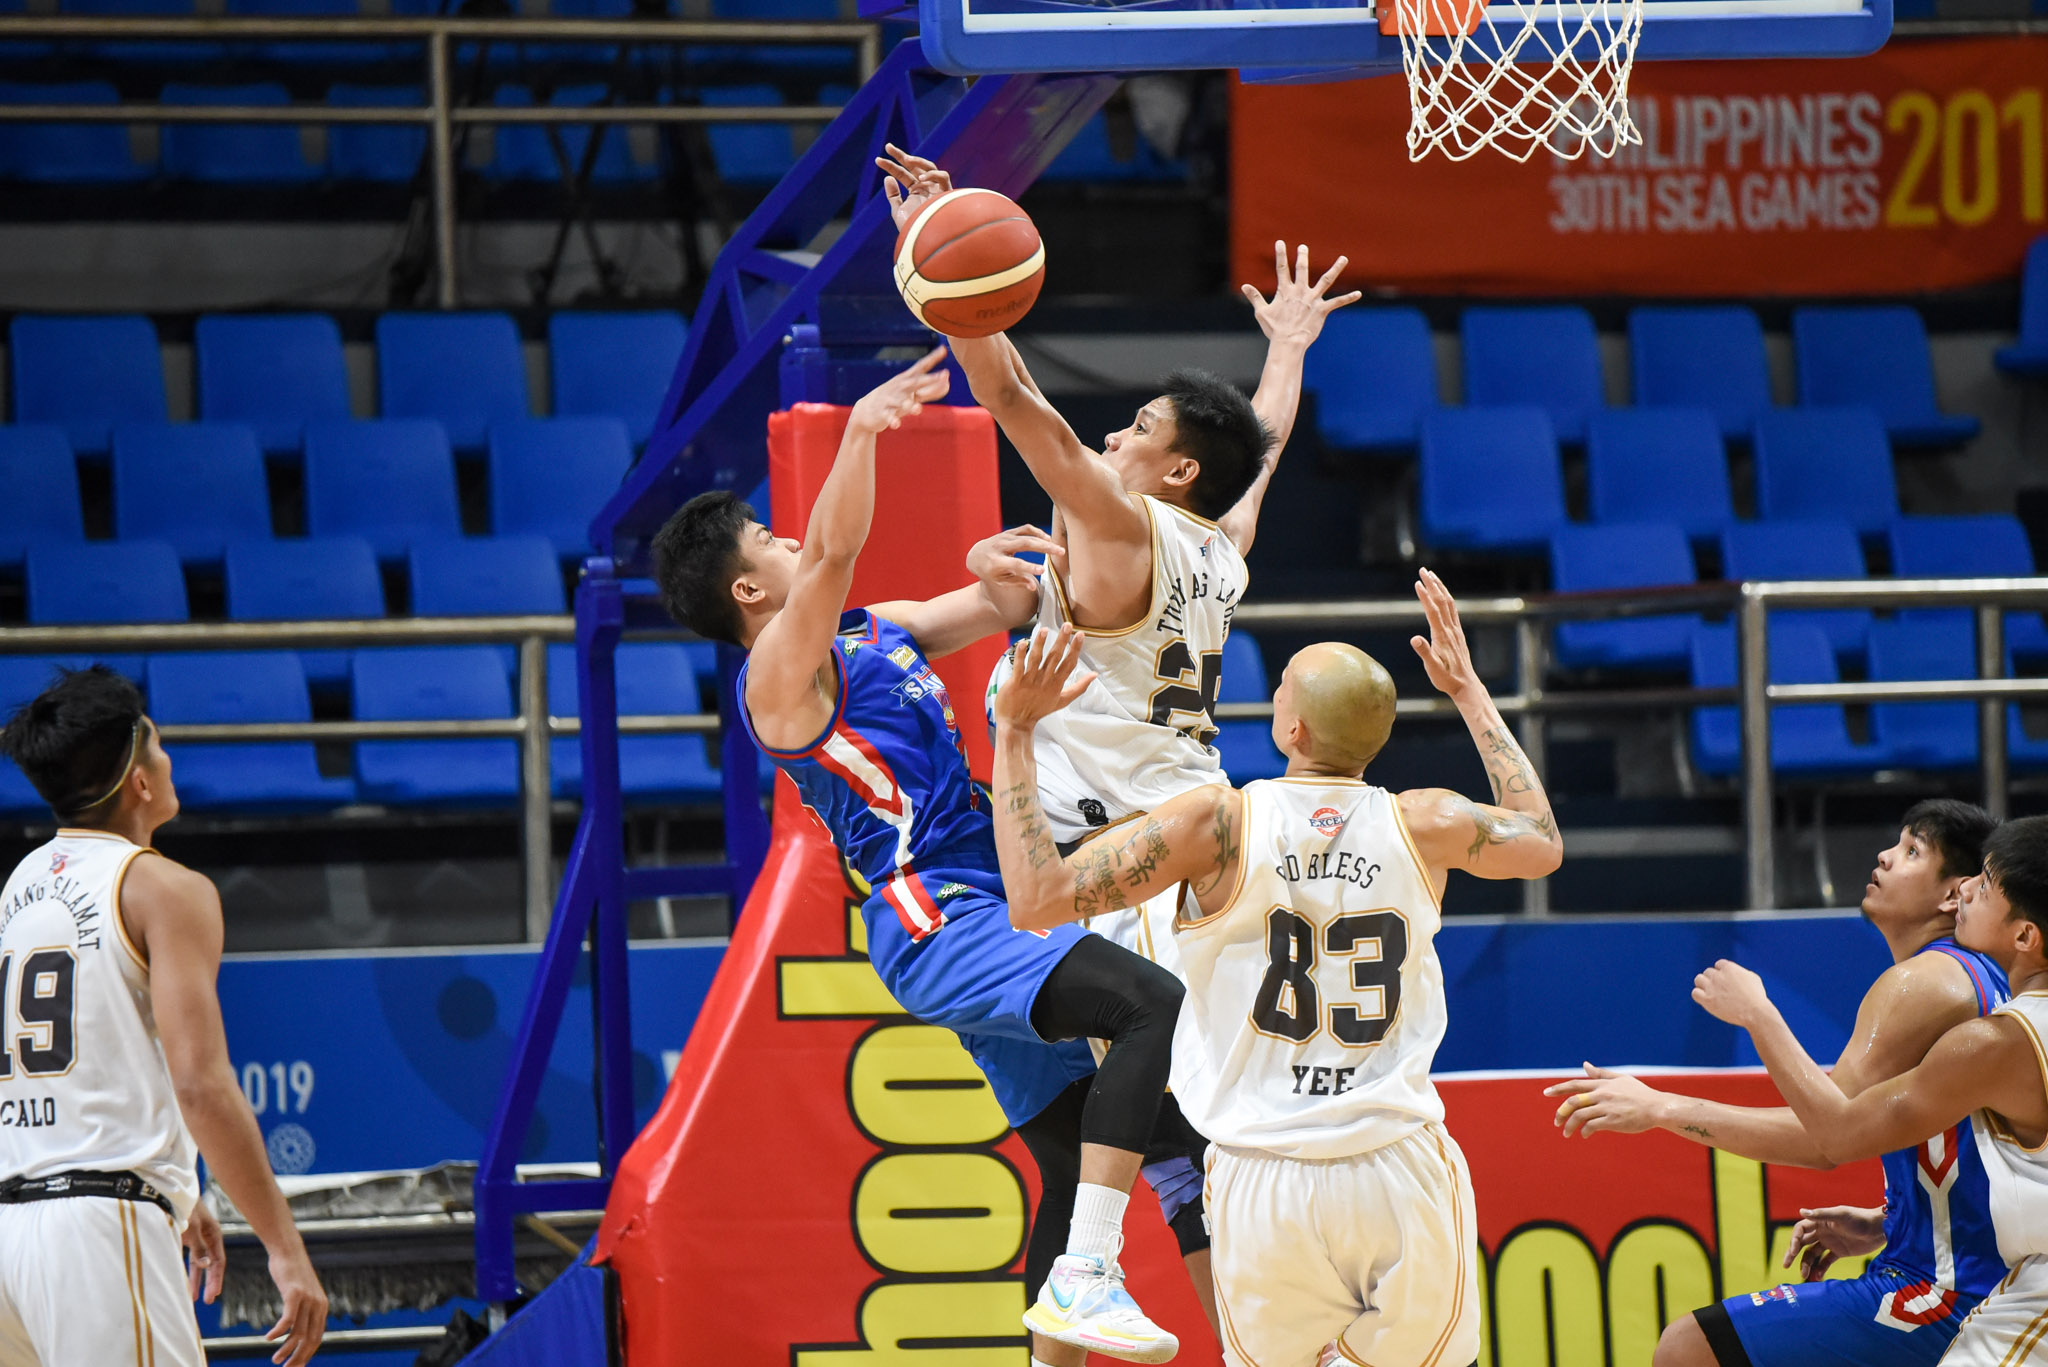 2021-Chooks-to-Go-MPBL-Lakan-Finals-Game-One-Davao-Occi-def-San-Juan-Billy-Robles-block Billy Robles proves why he is Dulay's go-to guy from ROS to Davao Occi Basketball MPBL News  - philippine sports news